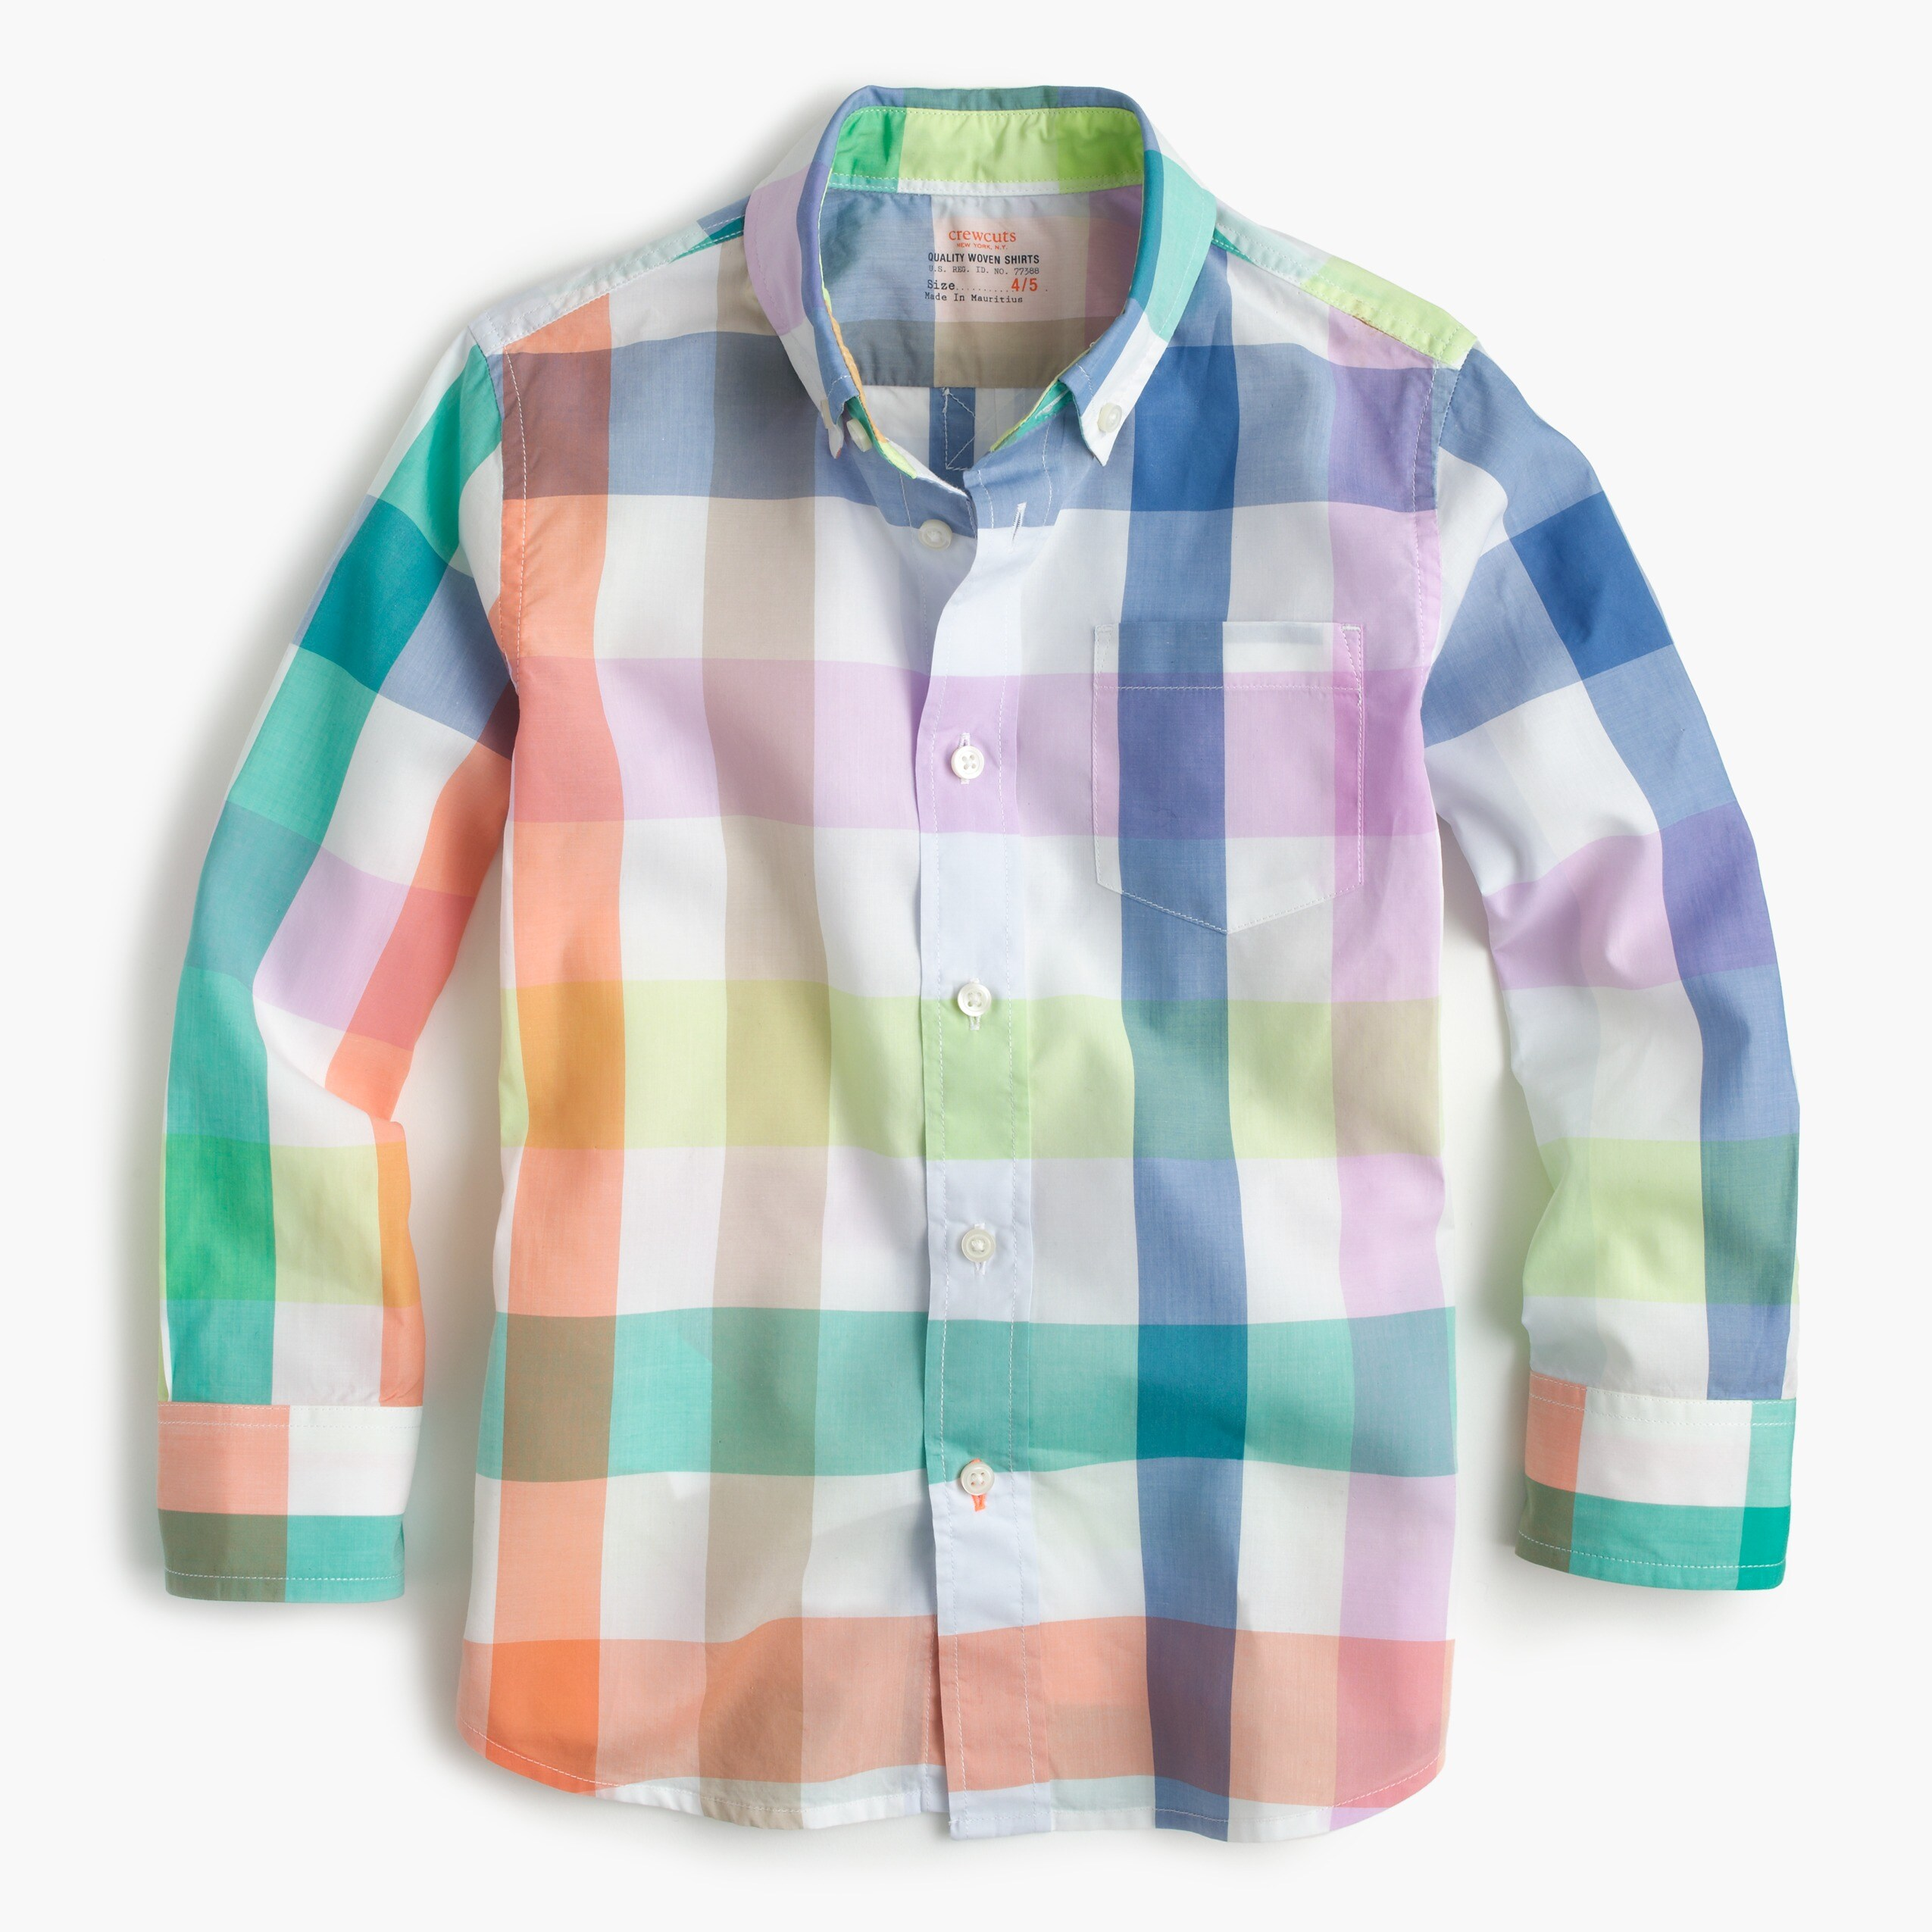 Image 2 for Kids' Secret Wash shirt in pastel gingham